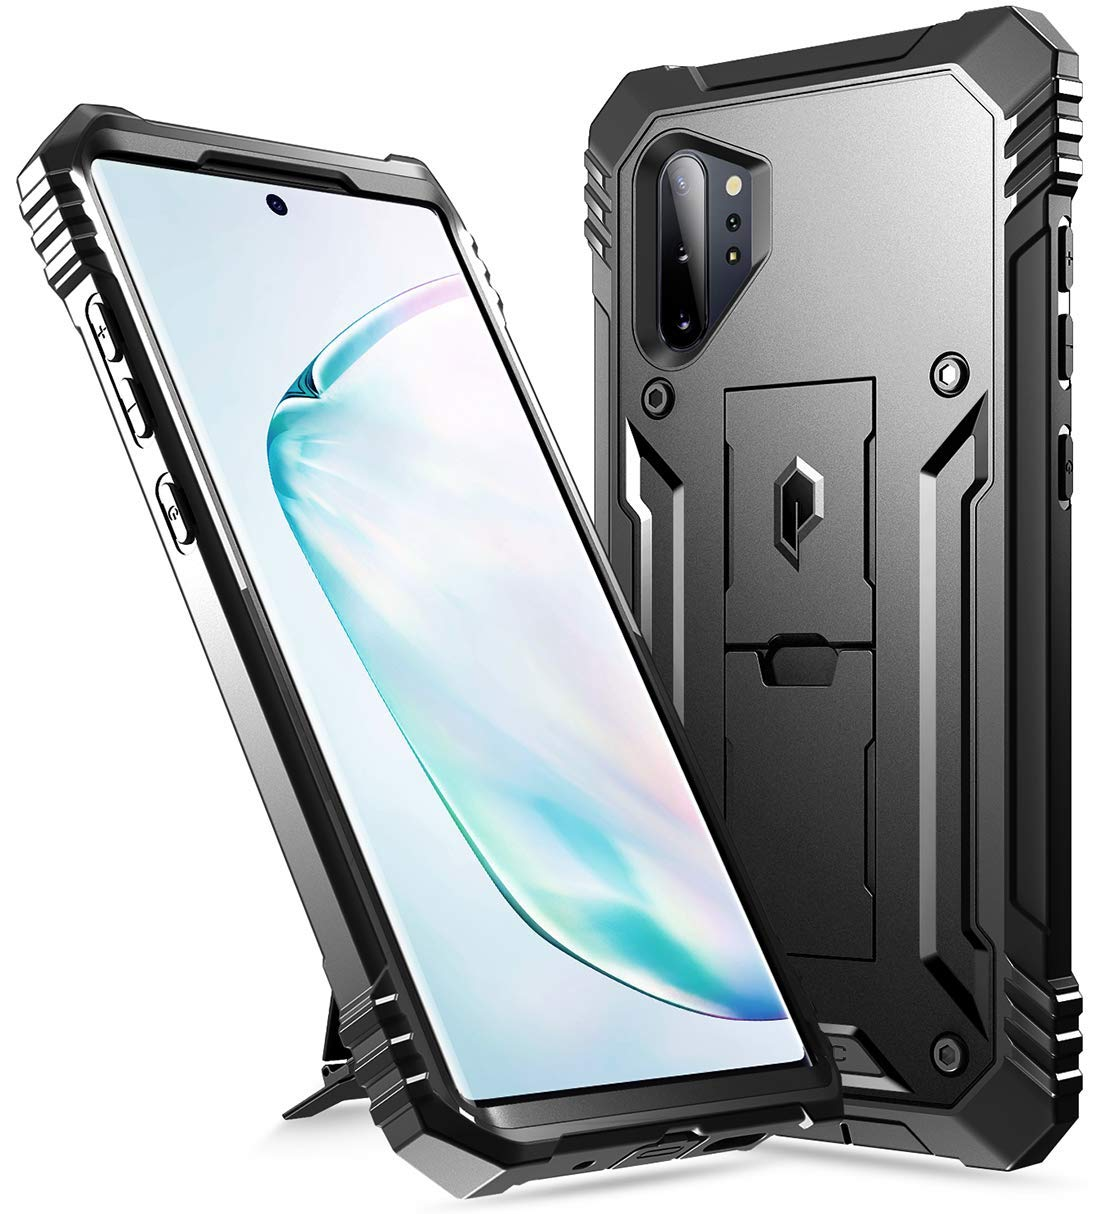 Galaxy Note 10 Plus Rugged Case with Kickstand, Poetic Heavy Duty Military Grade Full Body Cover, Without Built-in-Screen Protector, Revolution, for ...